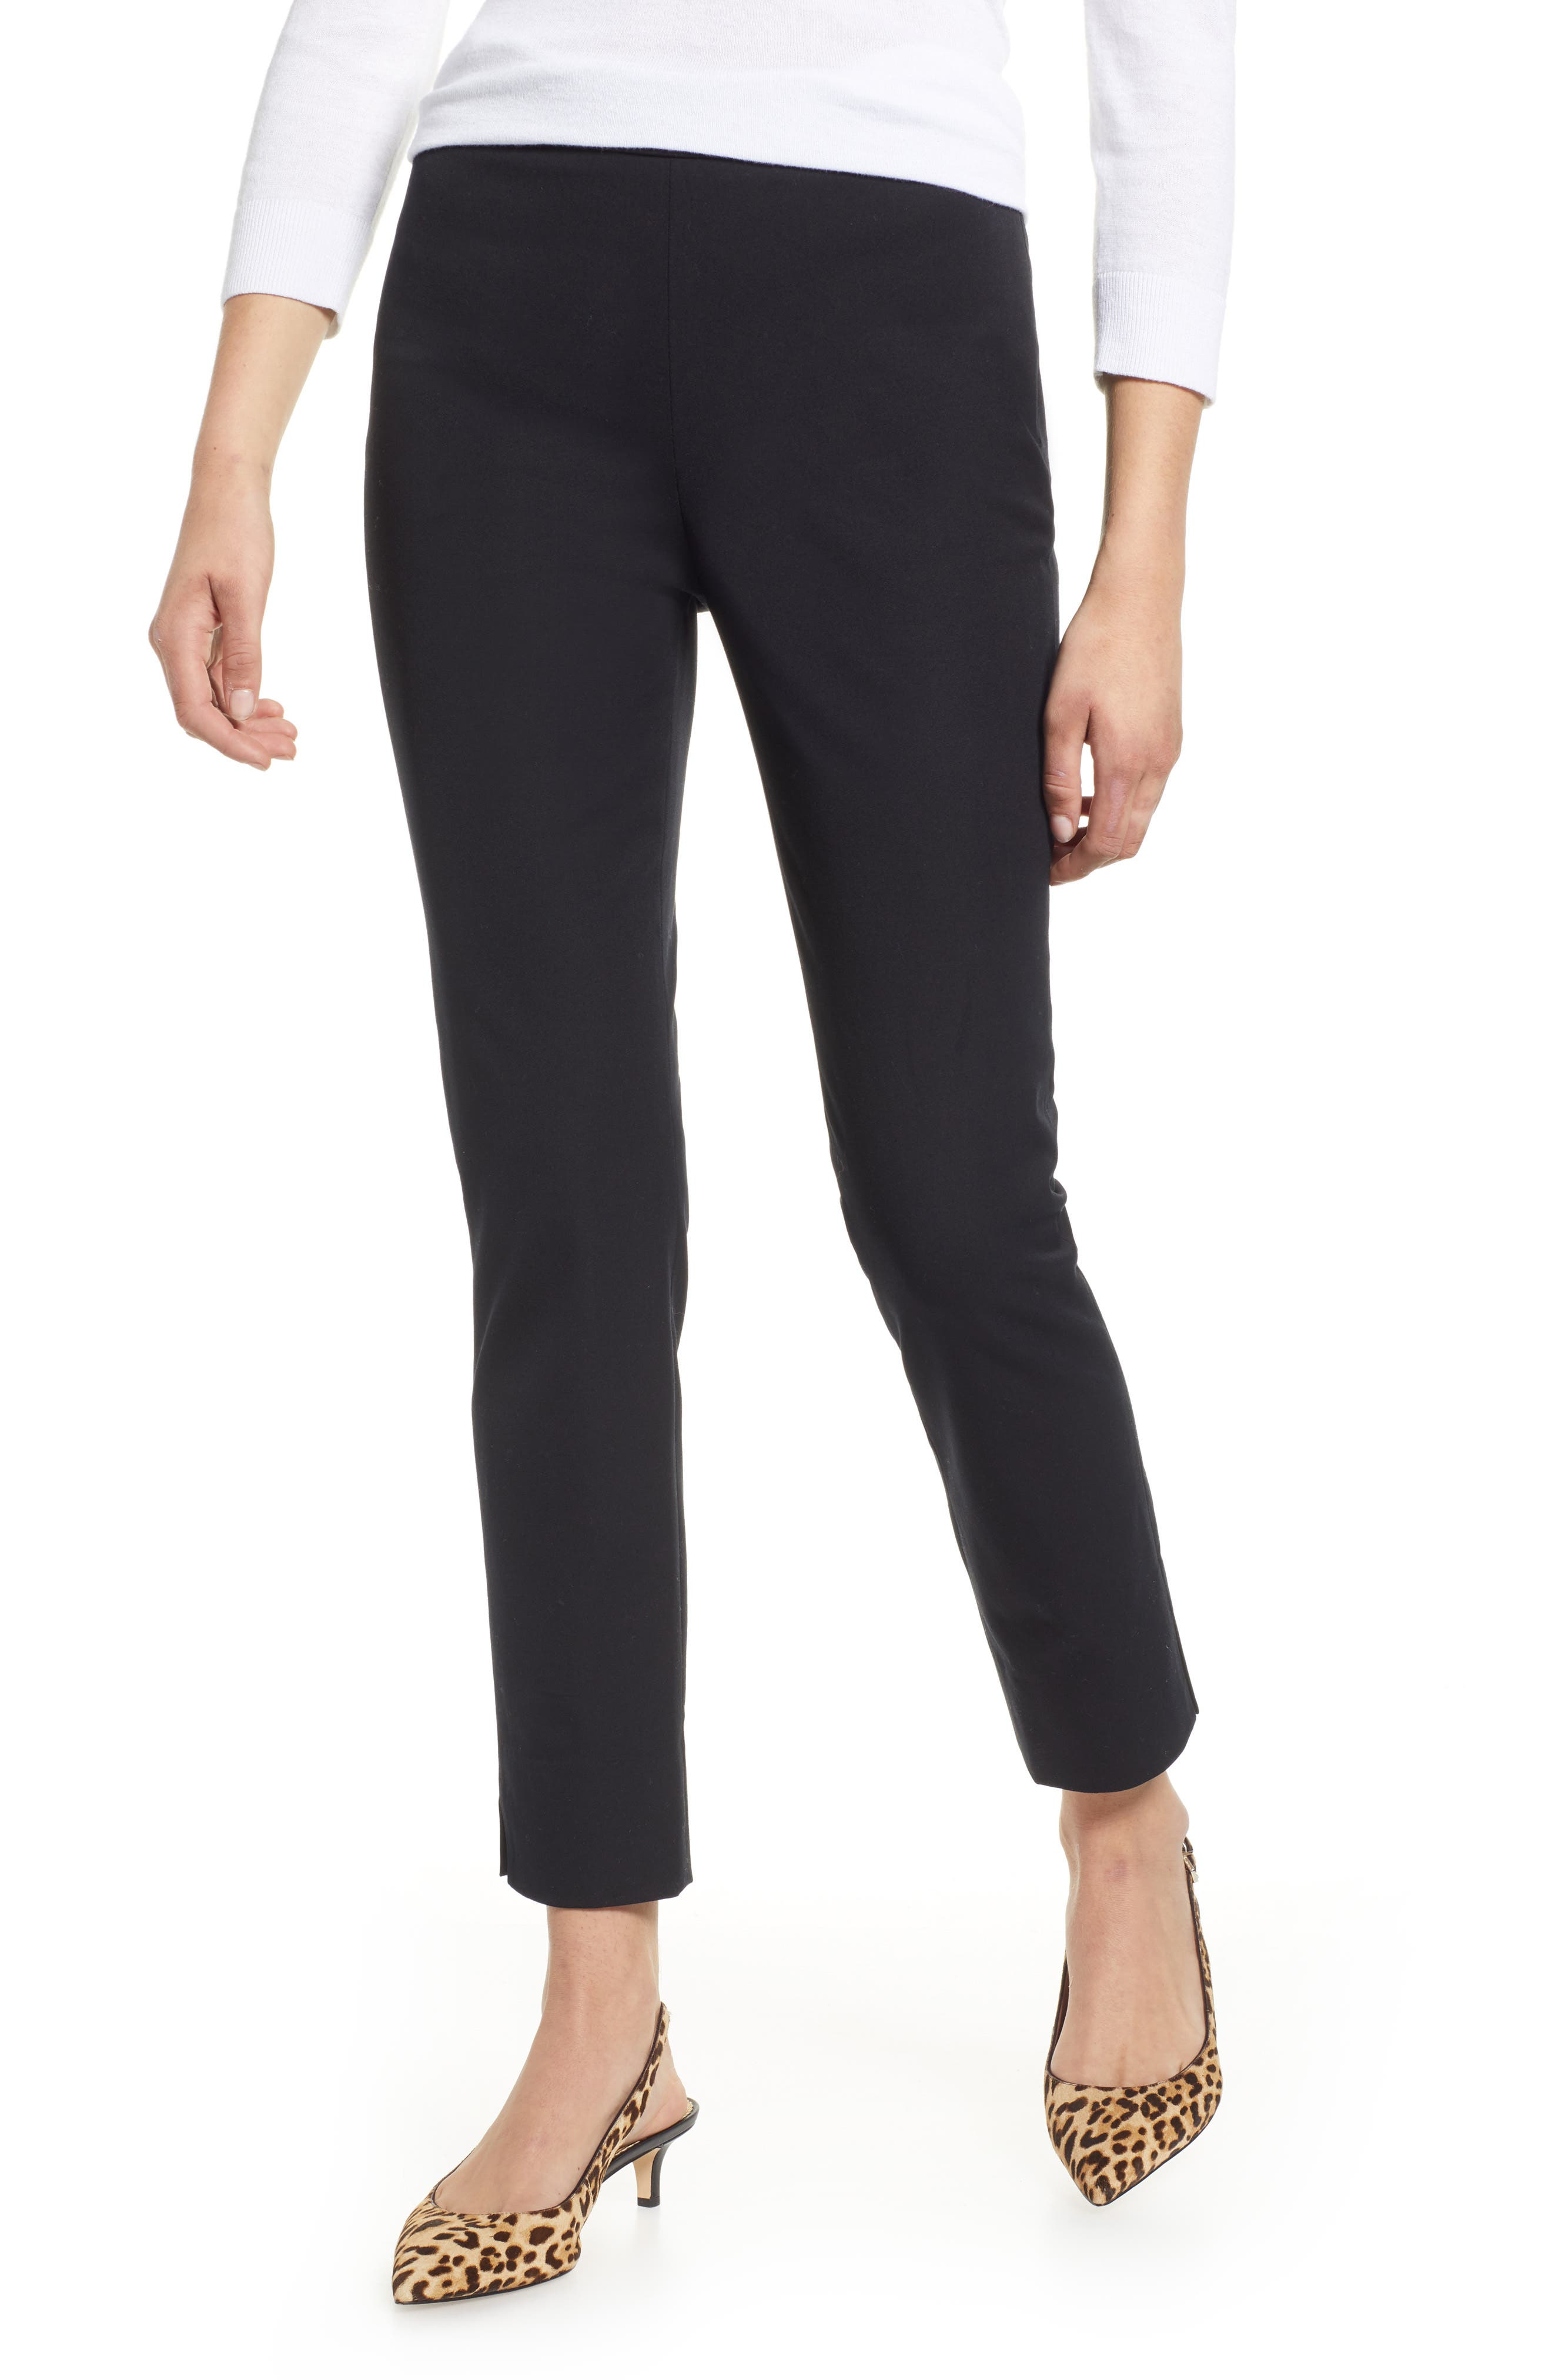 Petite Women's 1901 4-Way Stretch Ankle Skinny Pants